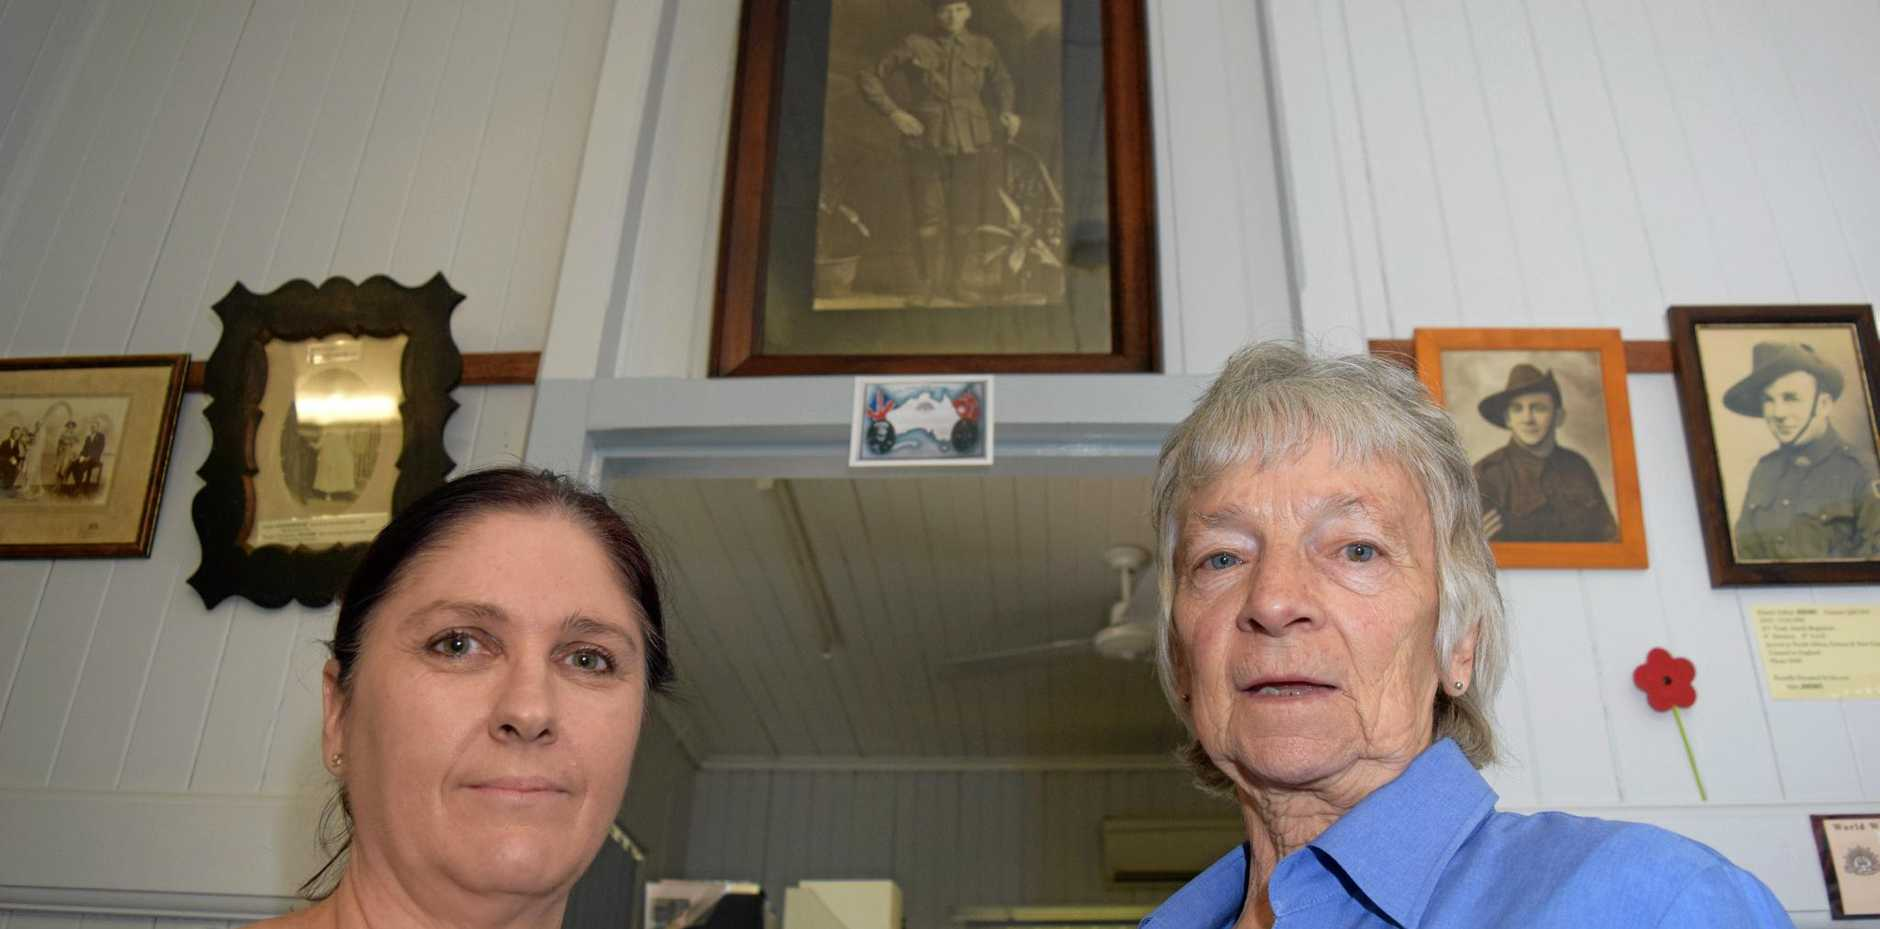 RIDDLE SOLVED: Relative of John Cowper, Betty McDonald, with Ipswich Genealogical Society president Irma Deas and (behind) the portrait of Private John Cowper.